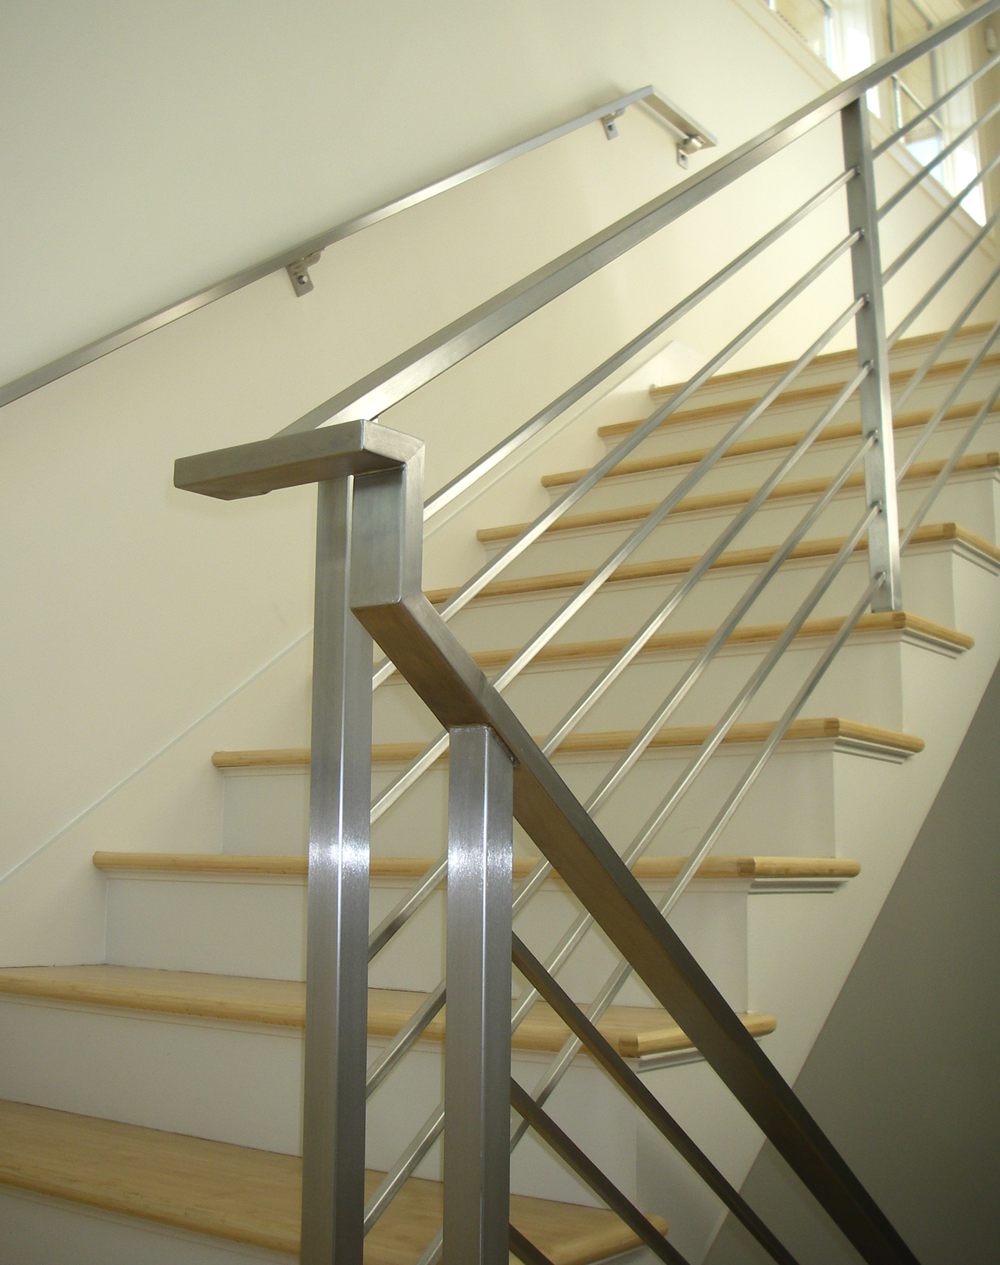 Stainless Steel Cable Stair Railing